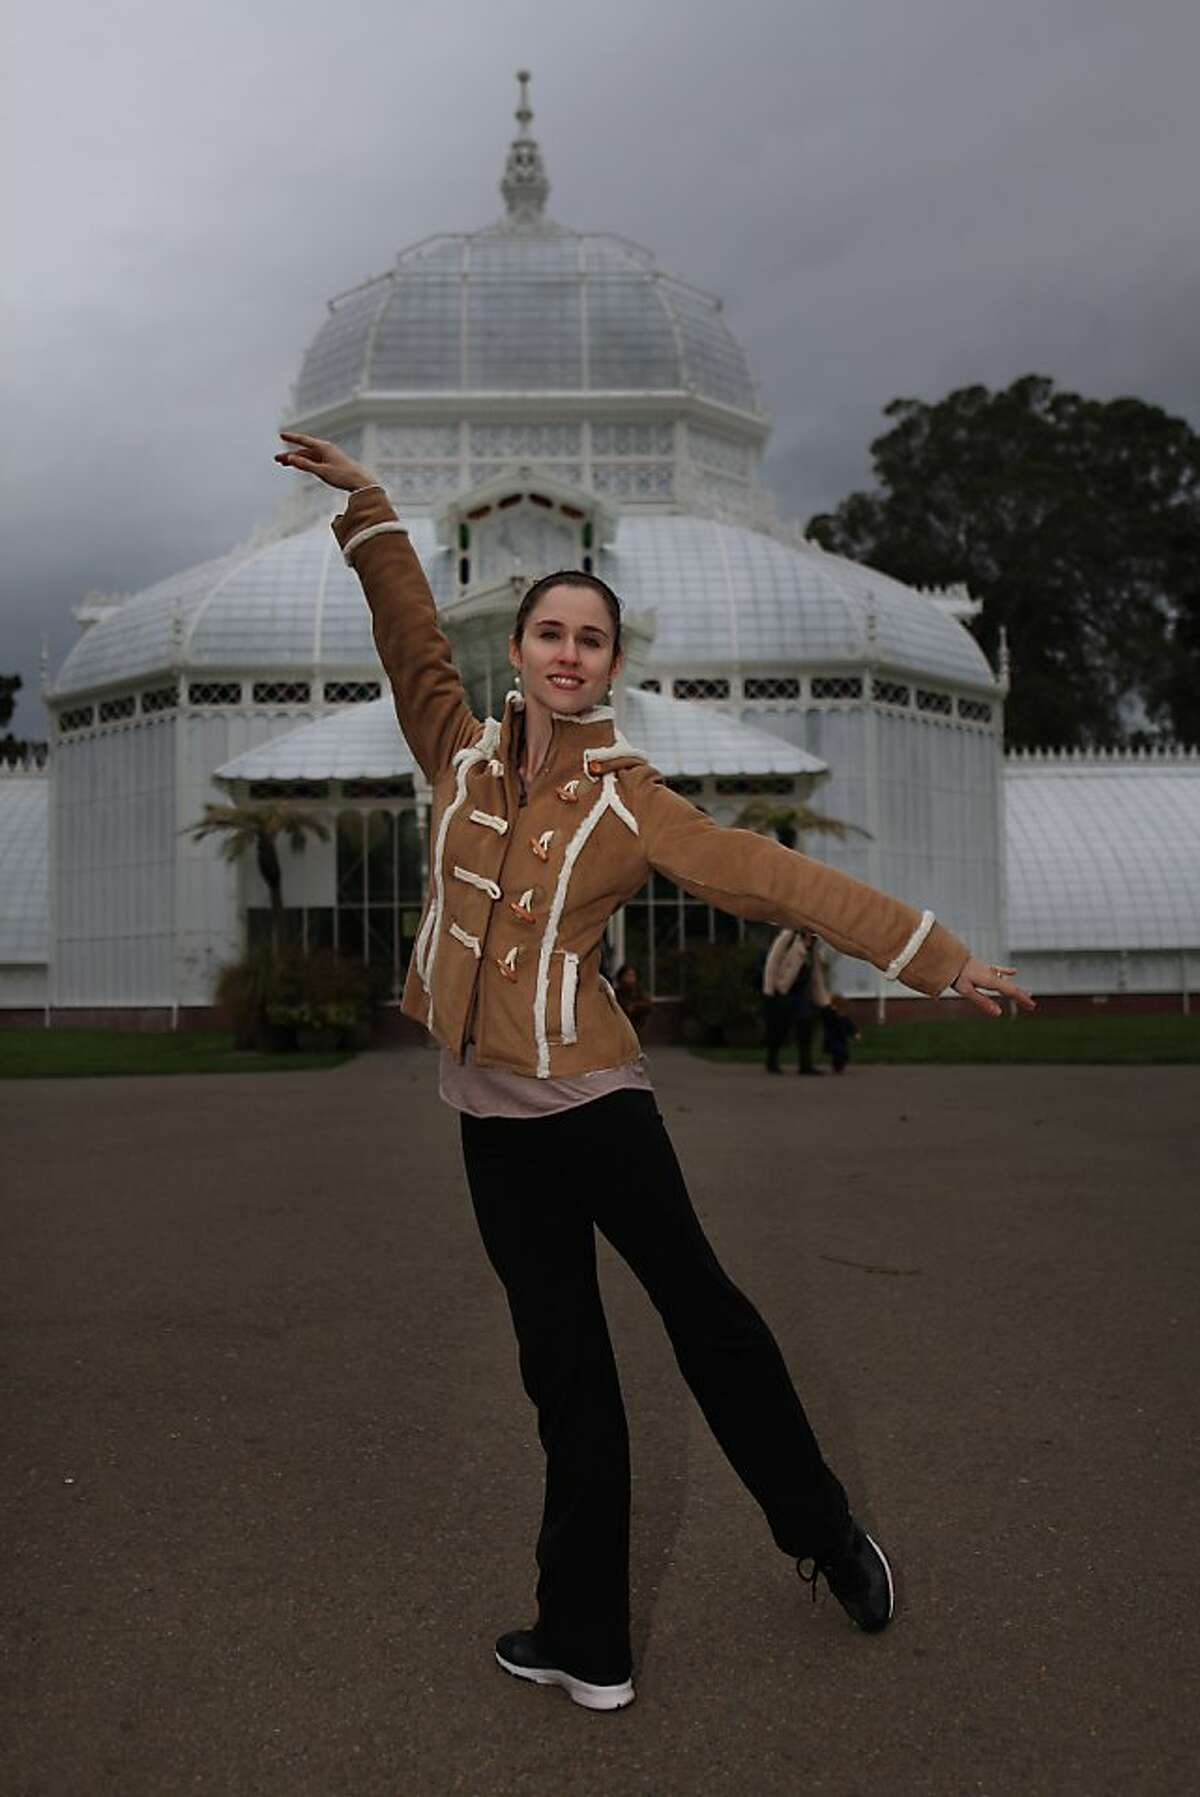 """Courtney Elizabeth, San Francisco Ballet dancer is seen at the Conservatory of Flowers on Wednesday, November 23, 2011 in San Francisco, Calif. The San Francisco Ballet """"Nutcracker"""" is set in San Francisco and the Conservatory of Flowers is evoked in one of the scenes. Elizabeth provides an online tour of the Conservatory of Flowers in the Nutcracker """"Guide to Our City""""."""